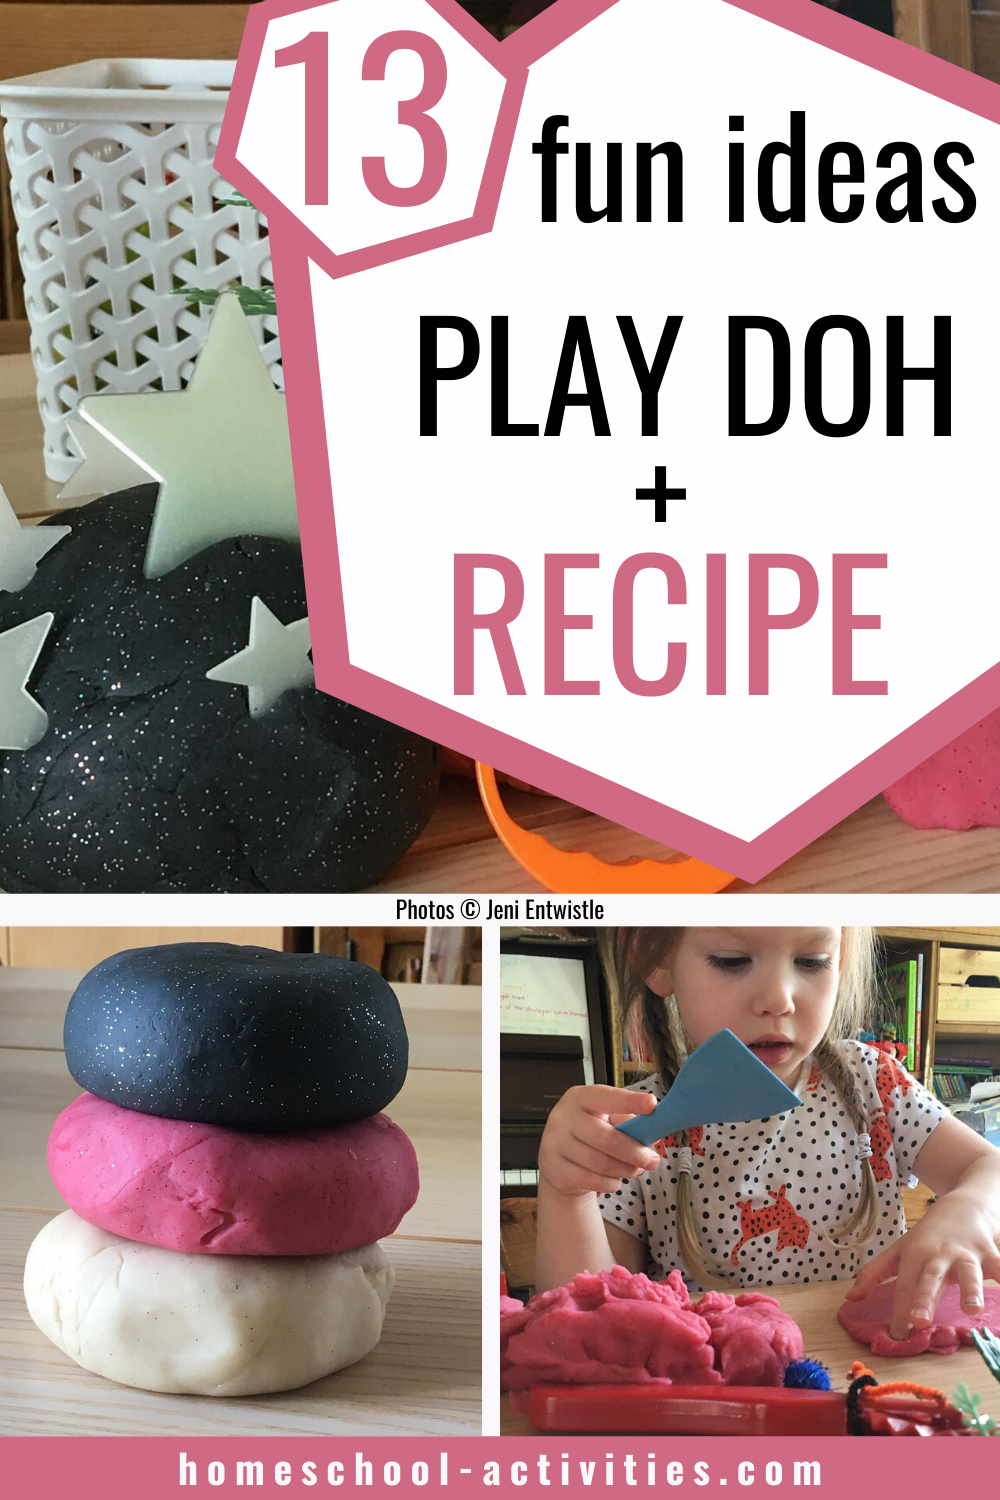 Playdough recipe and ideas